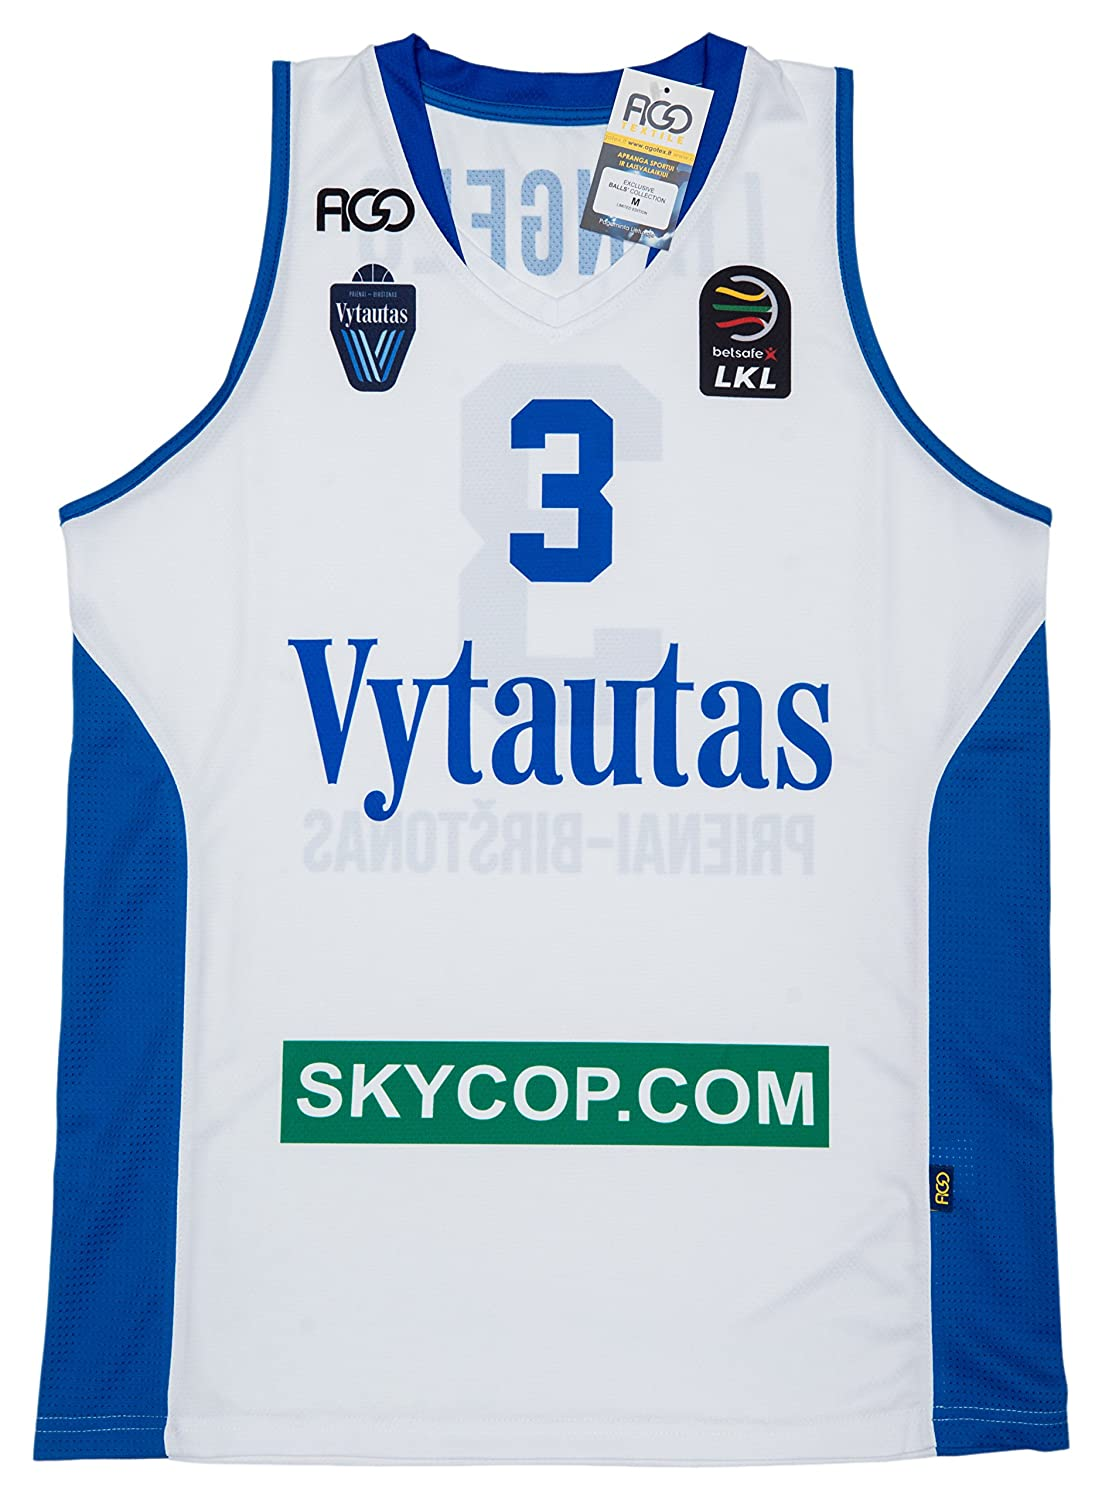 721947ad683 Amazon.com: Prienų-Birštono Vytautas LaMelo and LiAngelo Ball Original Team  Jersey: Clothing